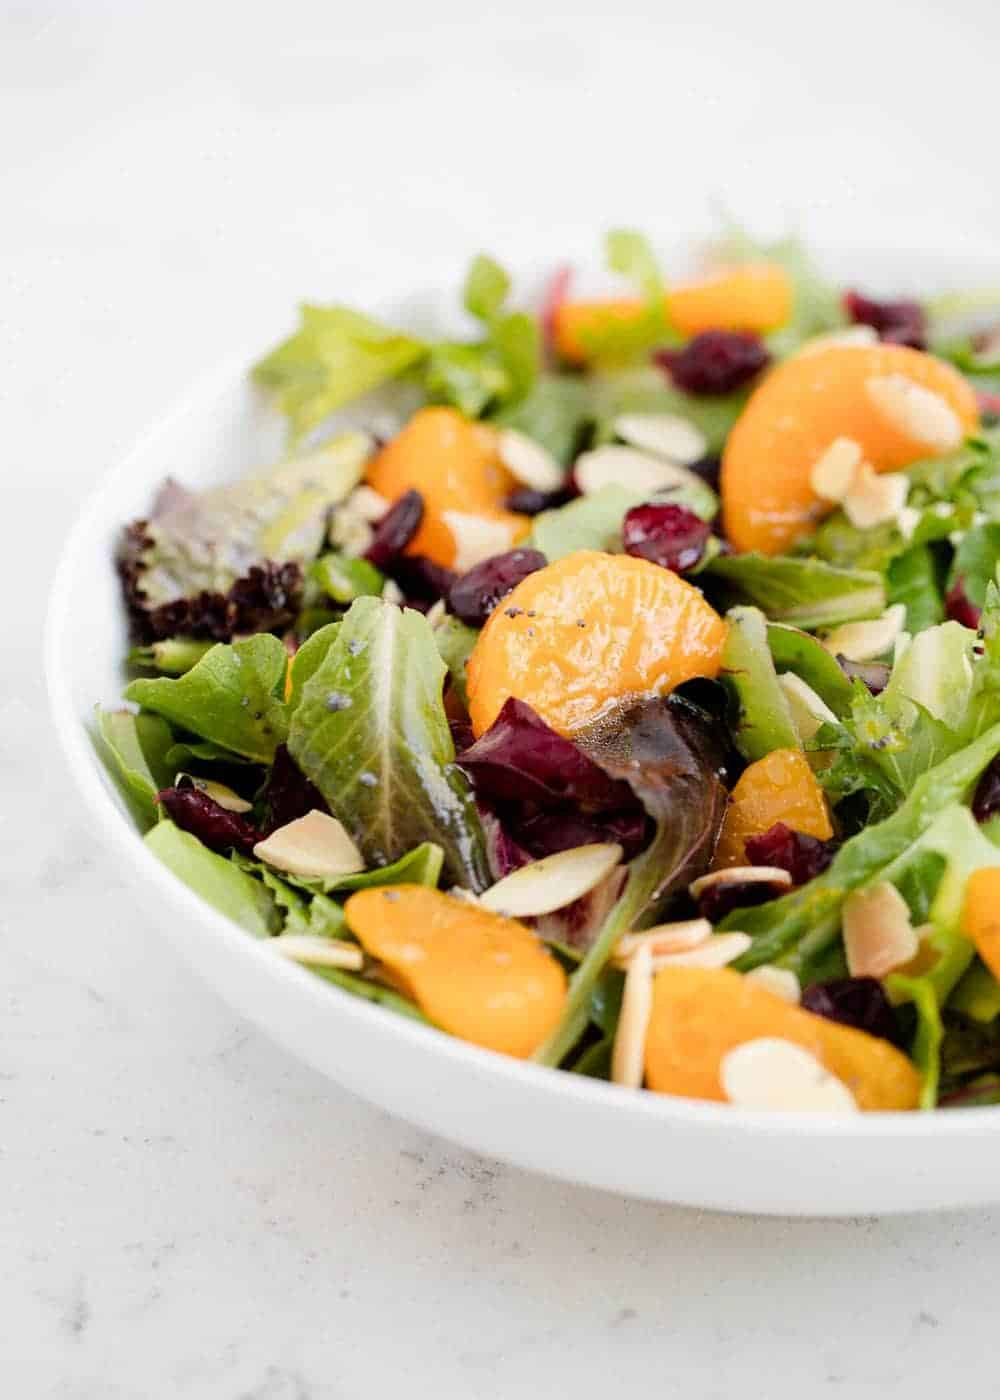 mandarin orange salad in a white bowl